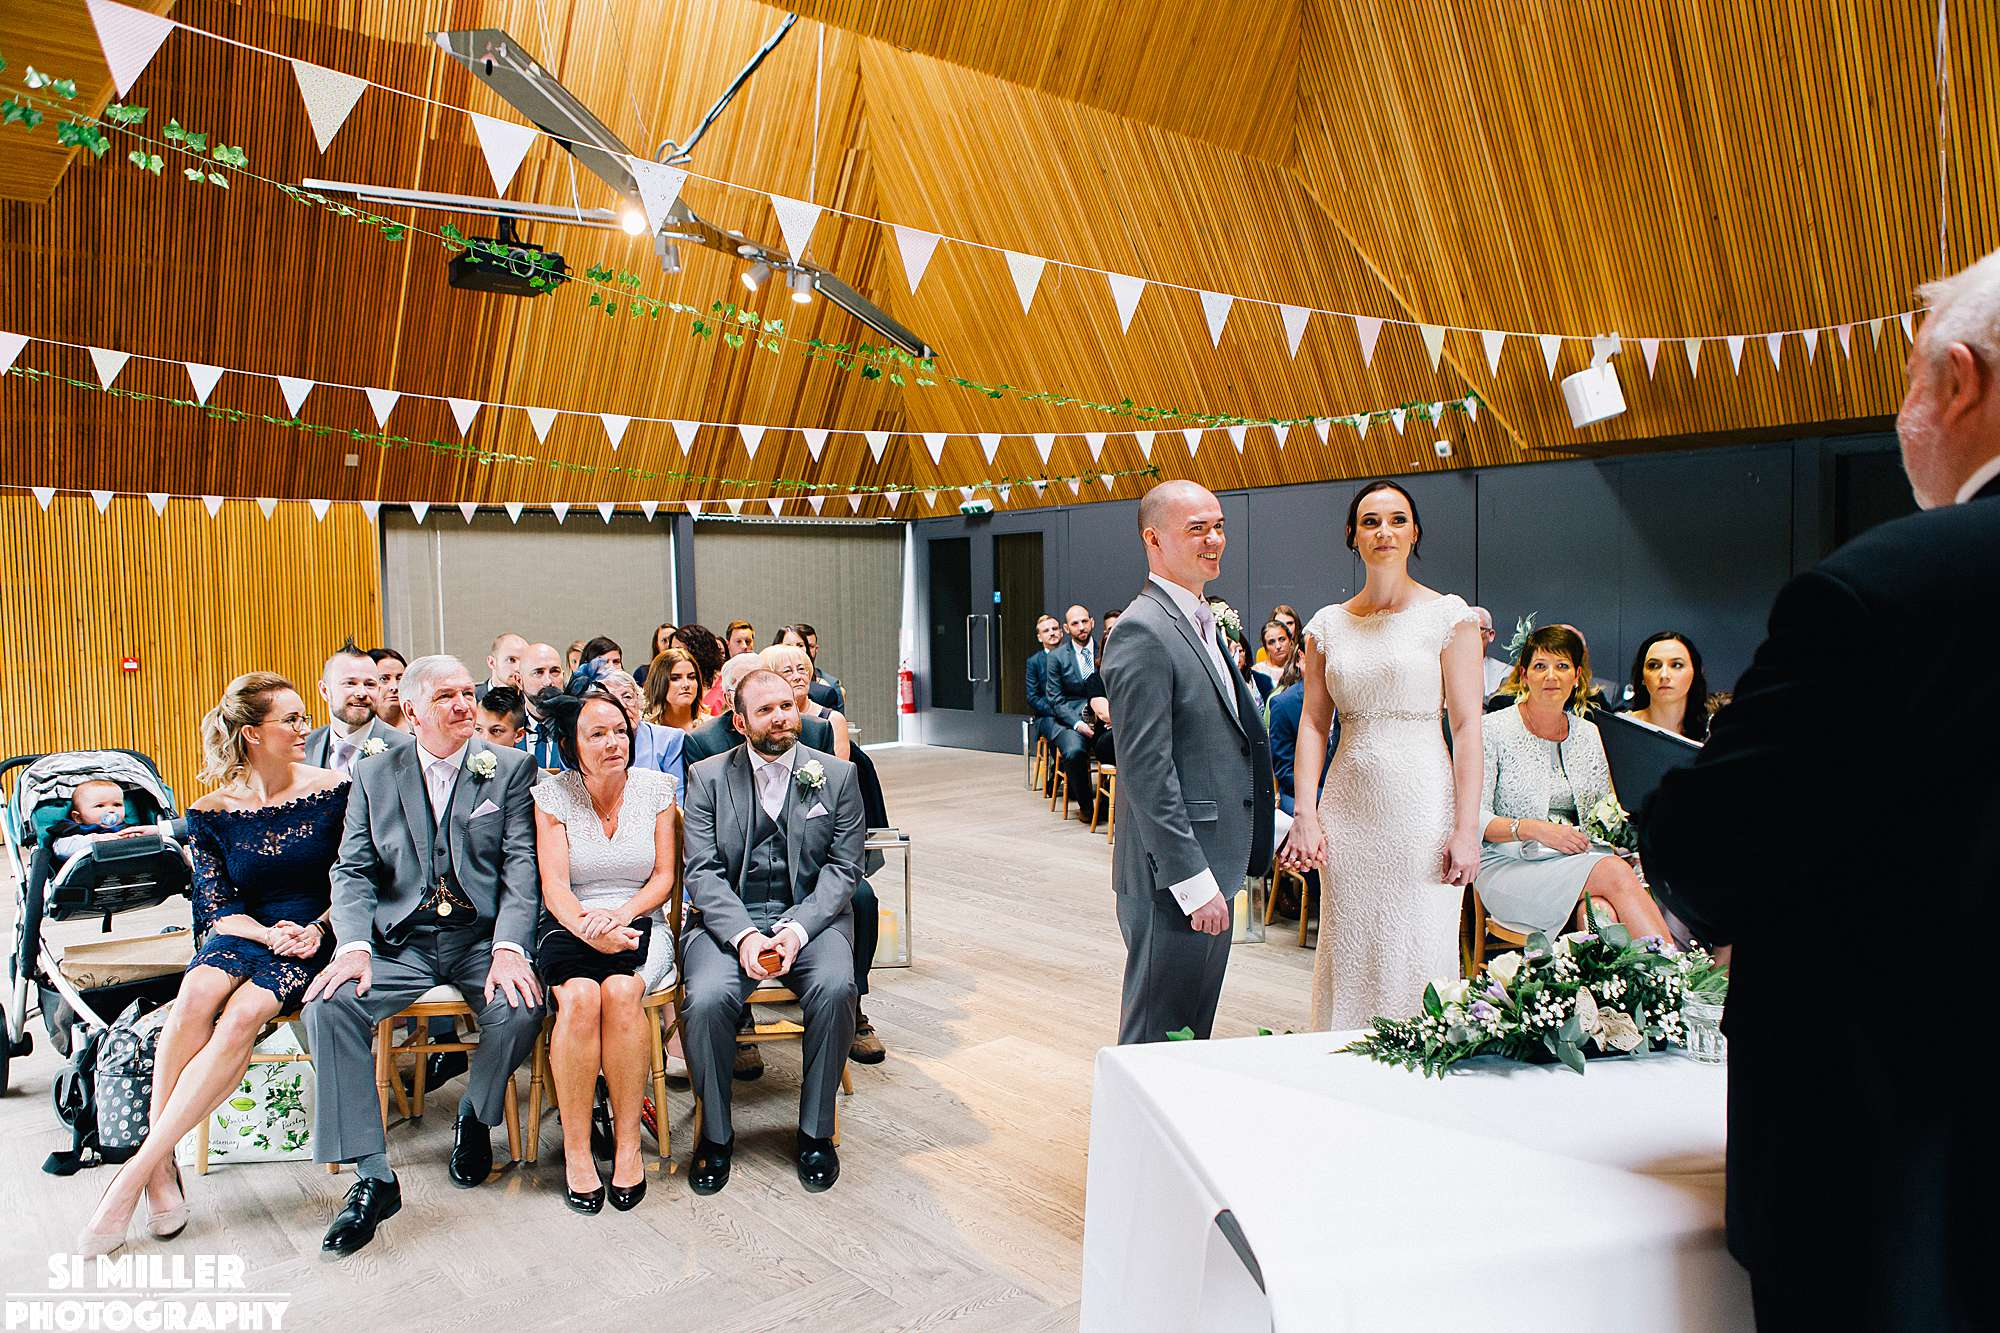 Wedding guests looking at couple during wedding ceremony at brockholes